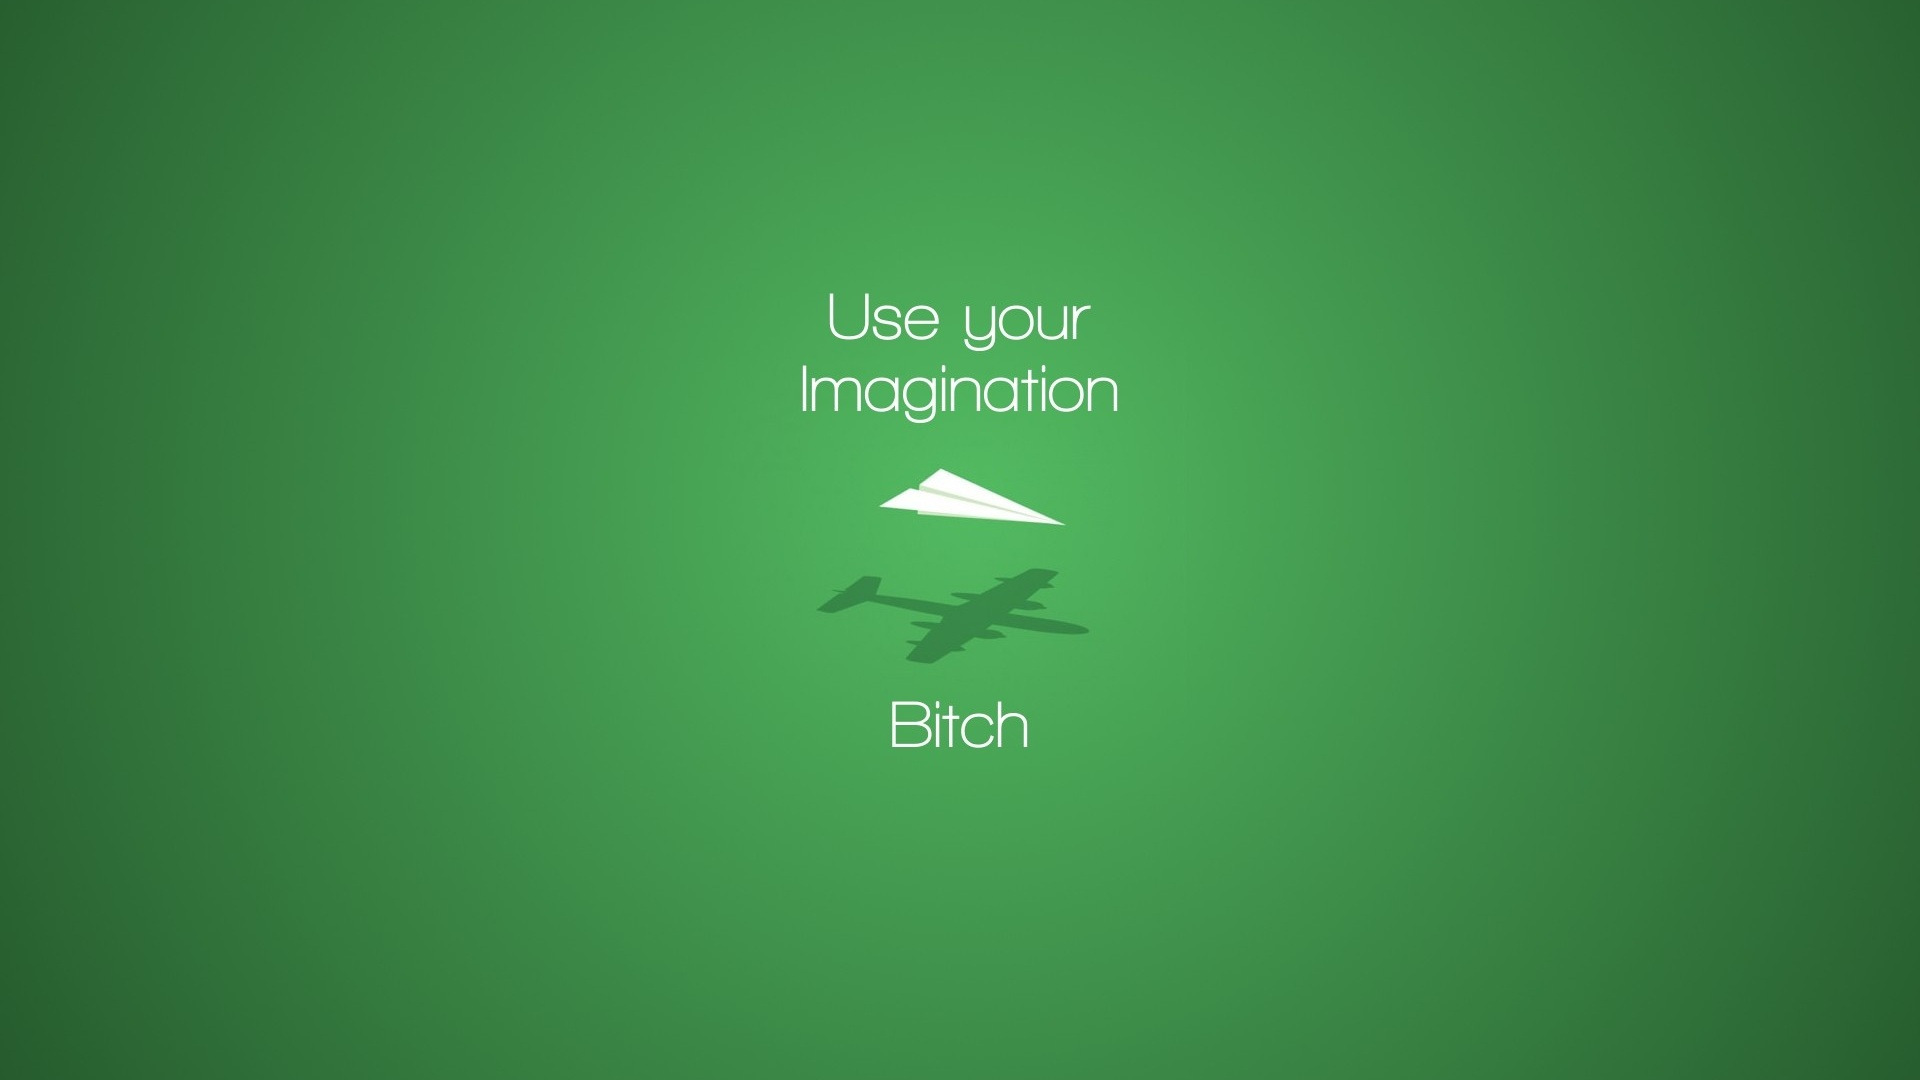 Use Your Imagination Wallpaper for Amazon Kindle Fire 1920x1080